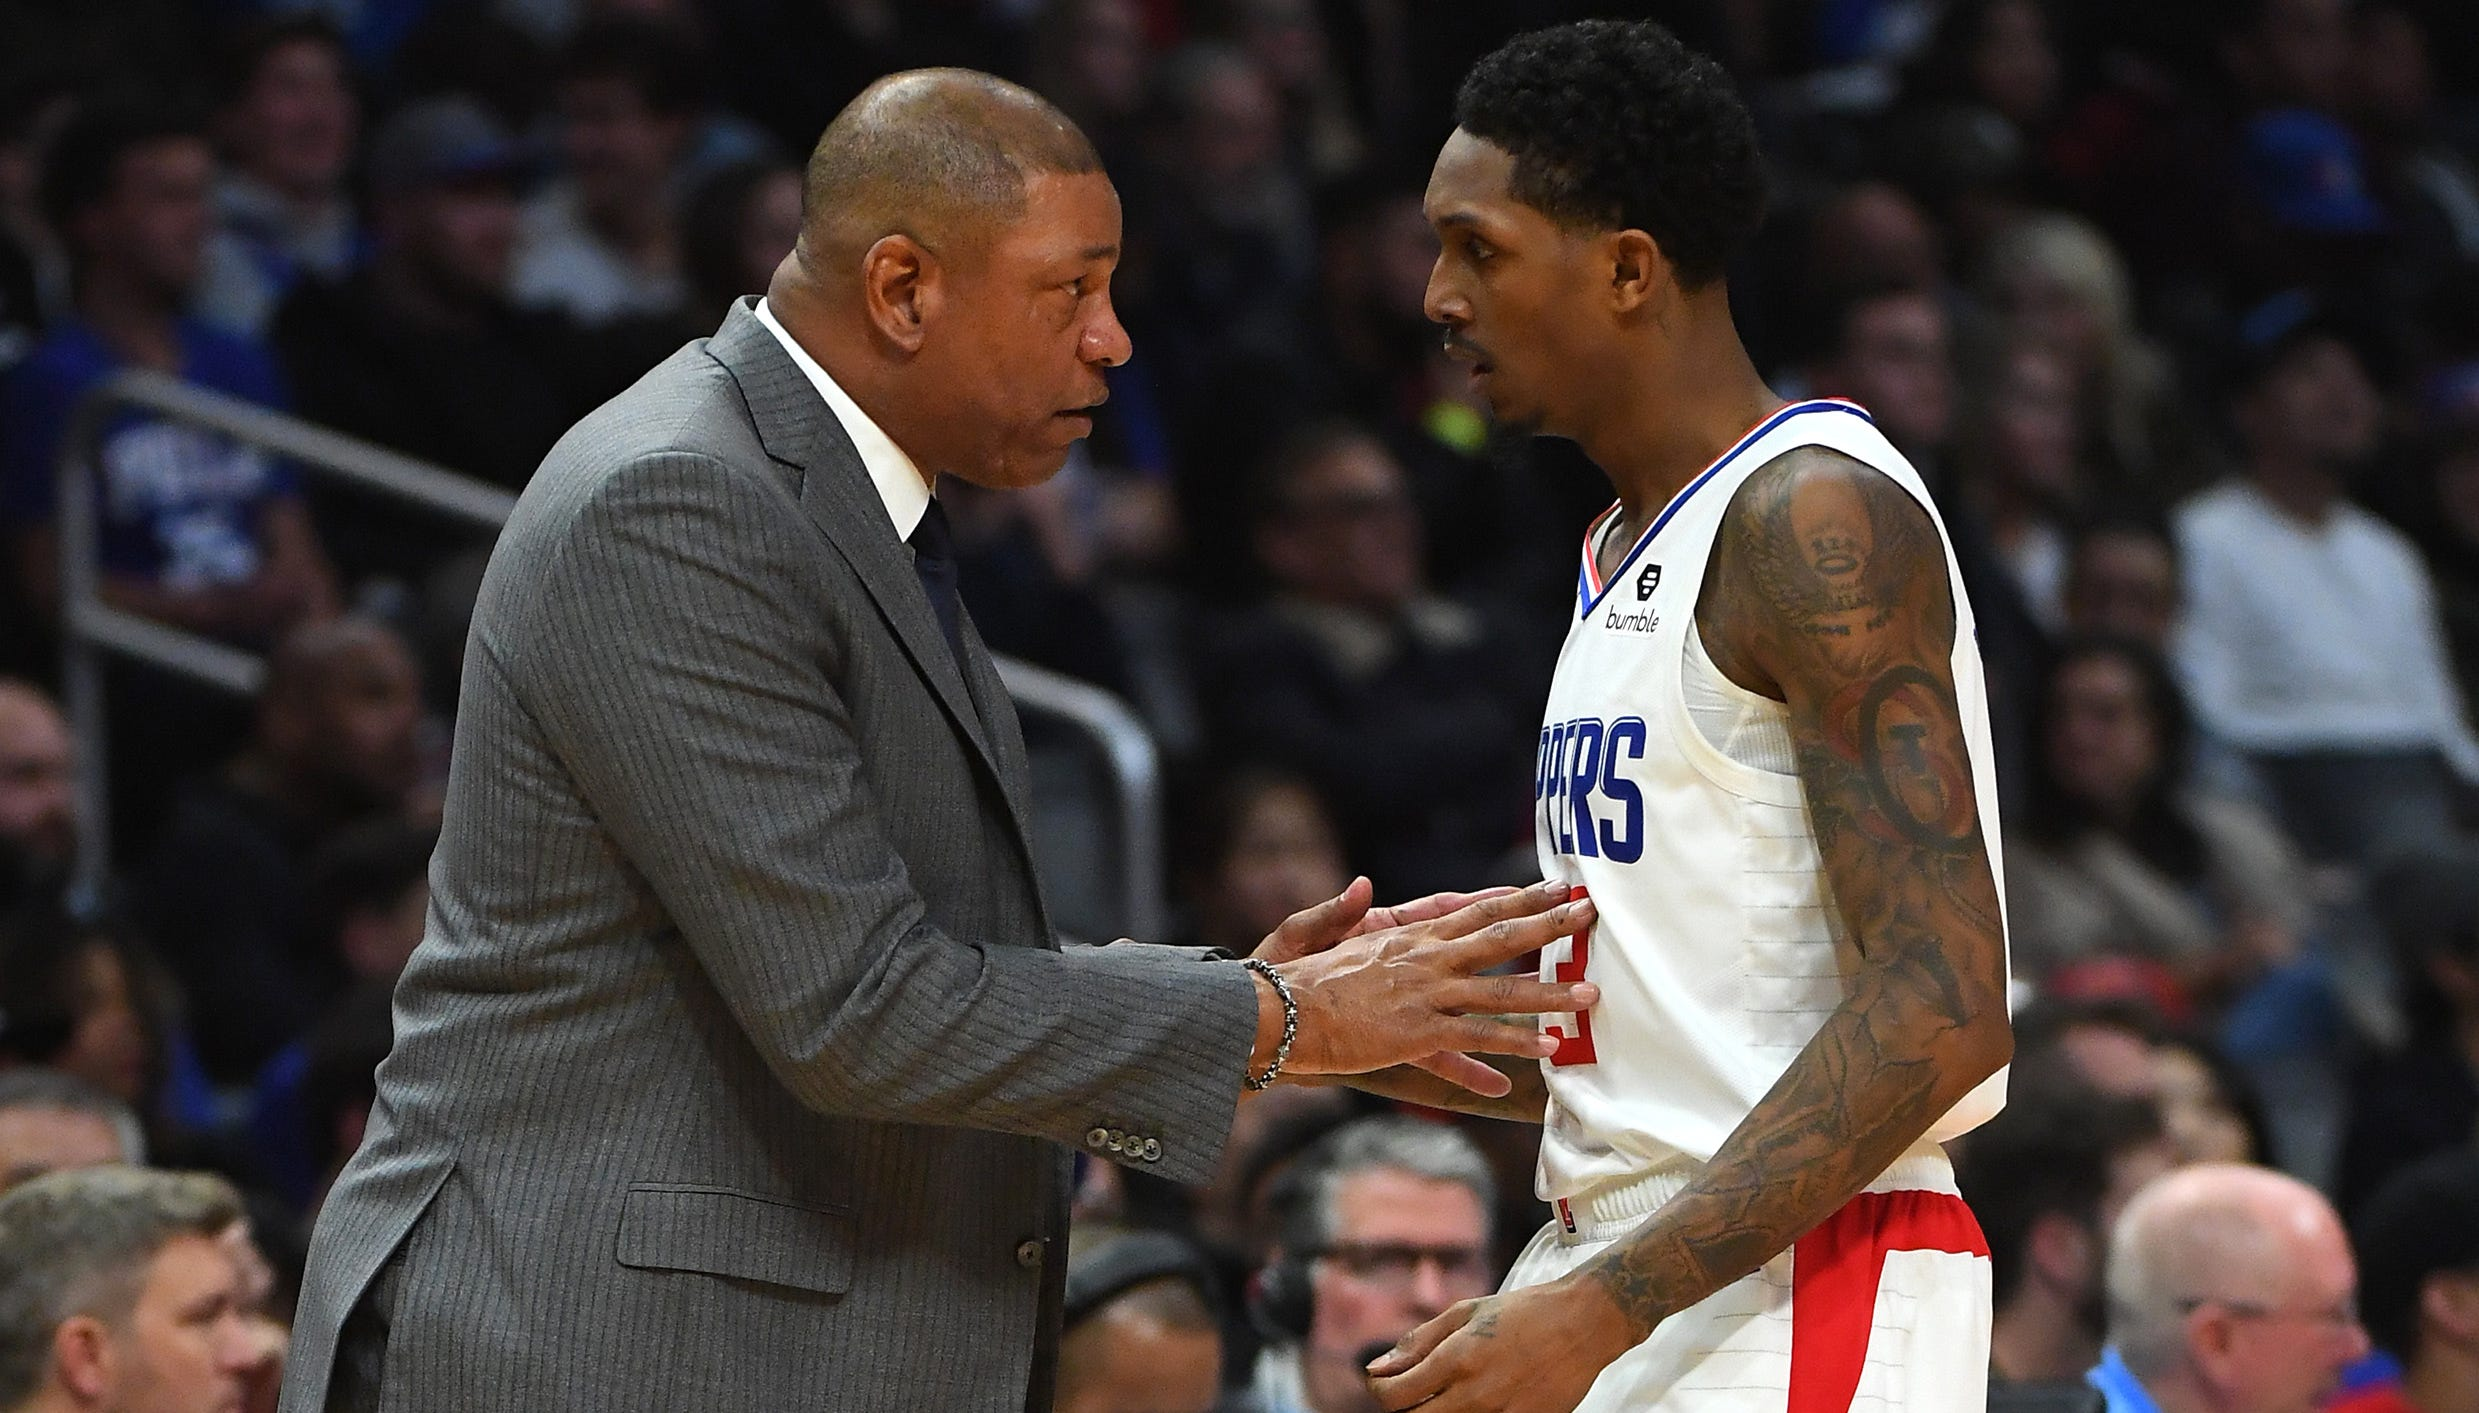 8067acf0-2d43-4a50-95b0-8ecc85fe34ee-usp_nba__philadelphia_76ers_at_los_angeles_clipper